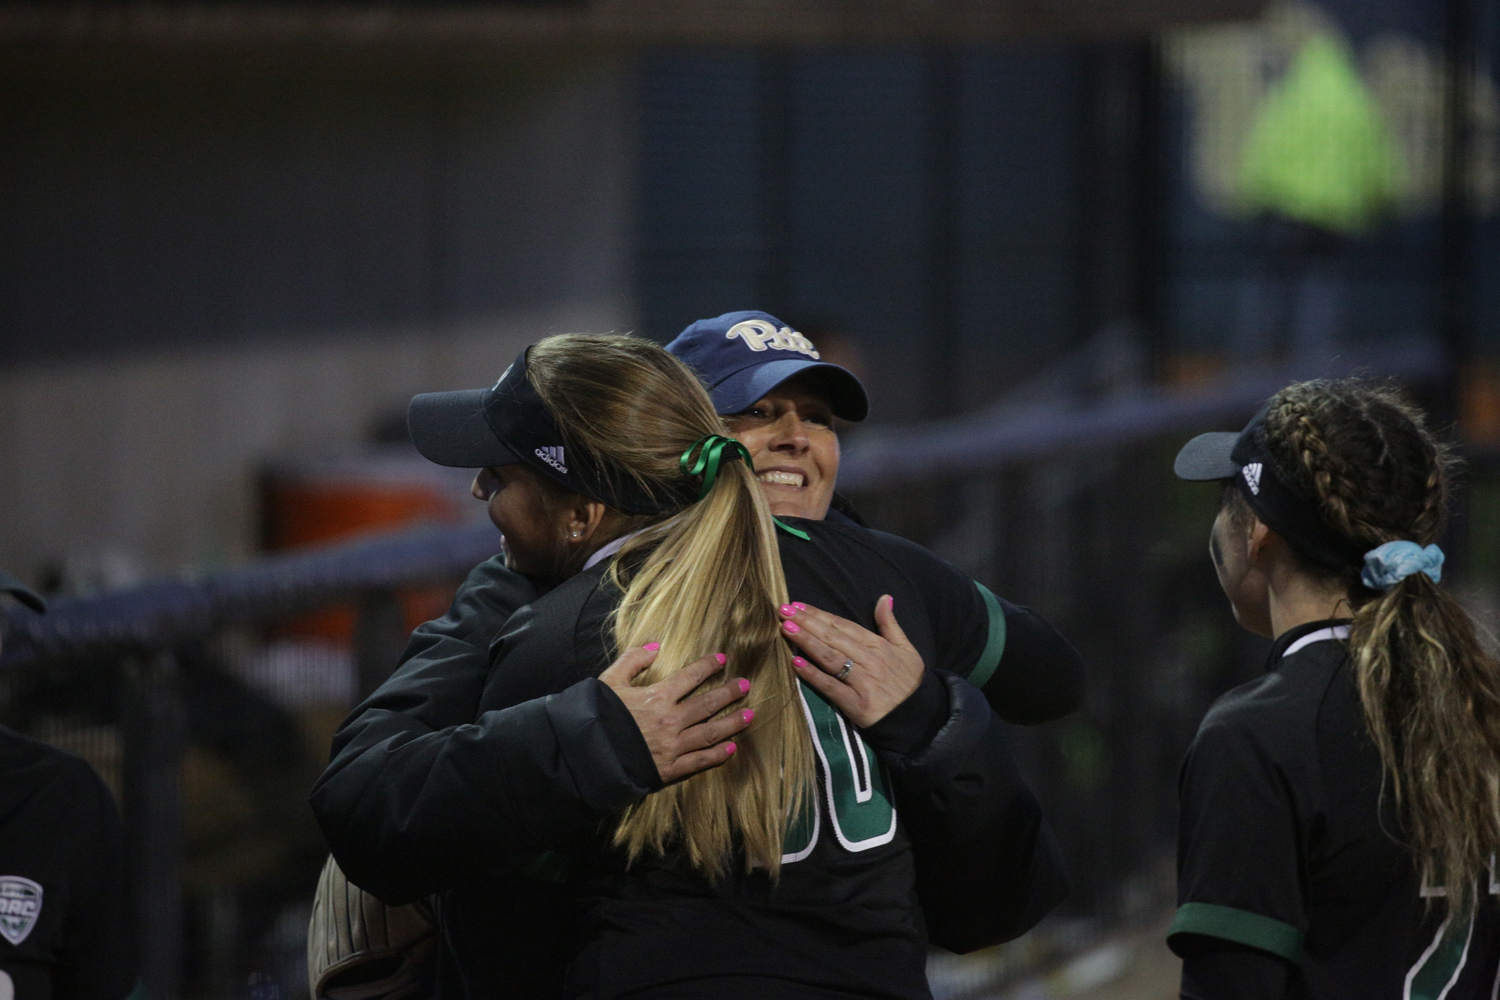 Head coach Jodi Hermanek congratulates her former Ohio University team after Pitt's 11-9 overtime loss.